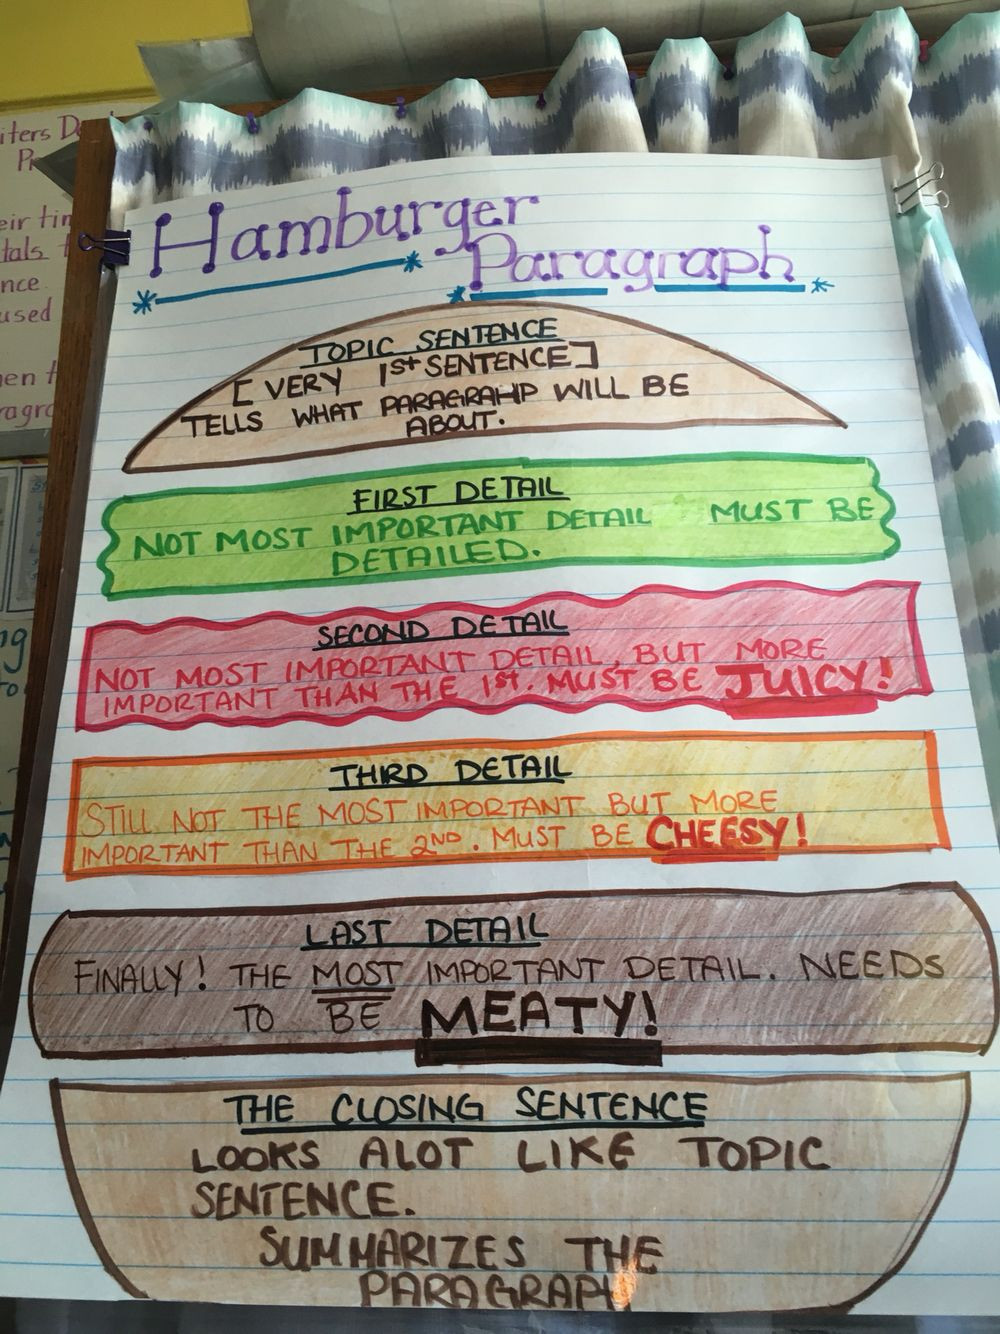 Topic Sentence Worksheets 2nd Grade Hamburger Paragraph for 2nd Grade Writing Includes topic